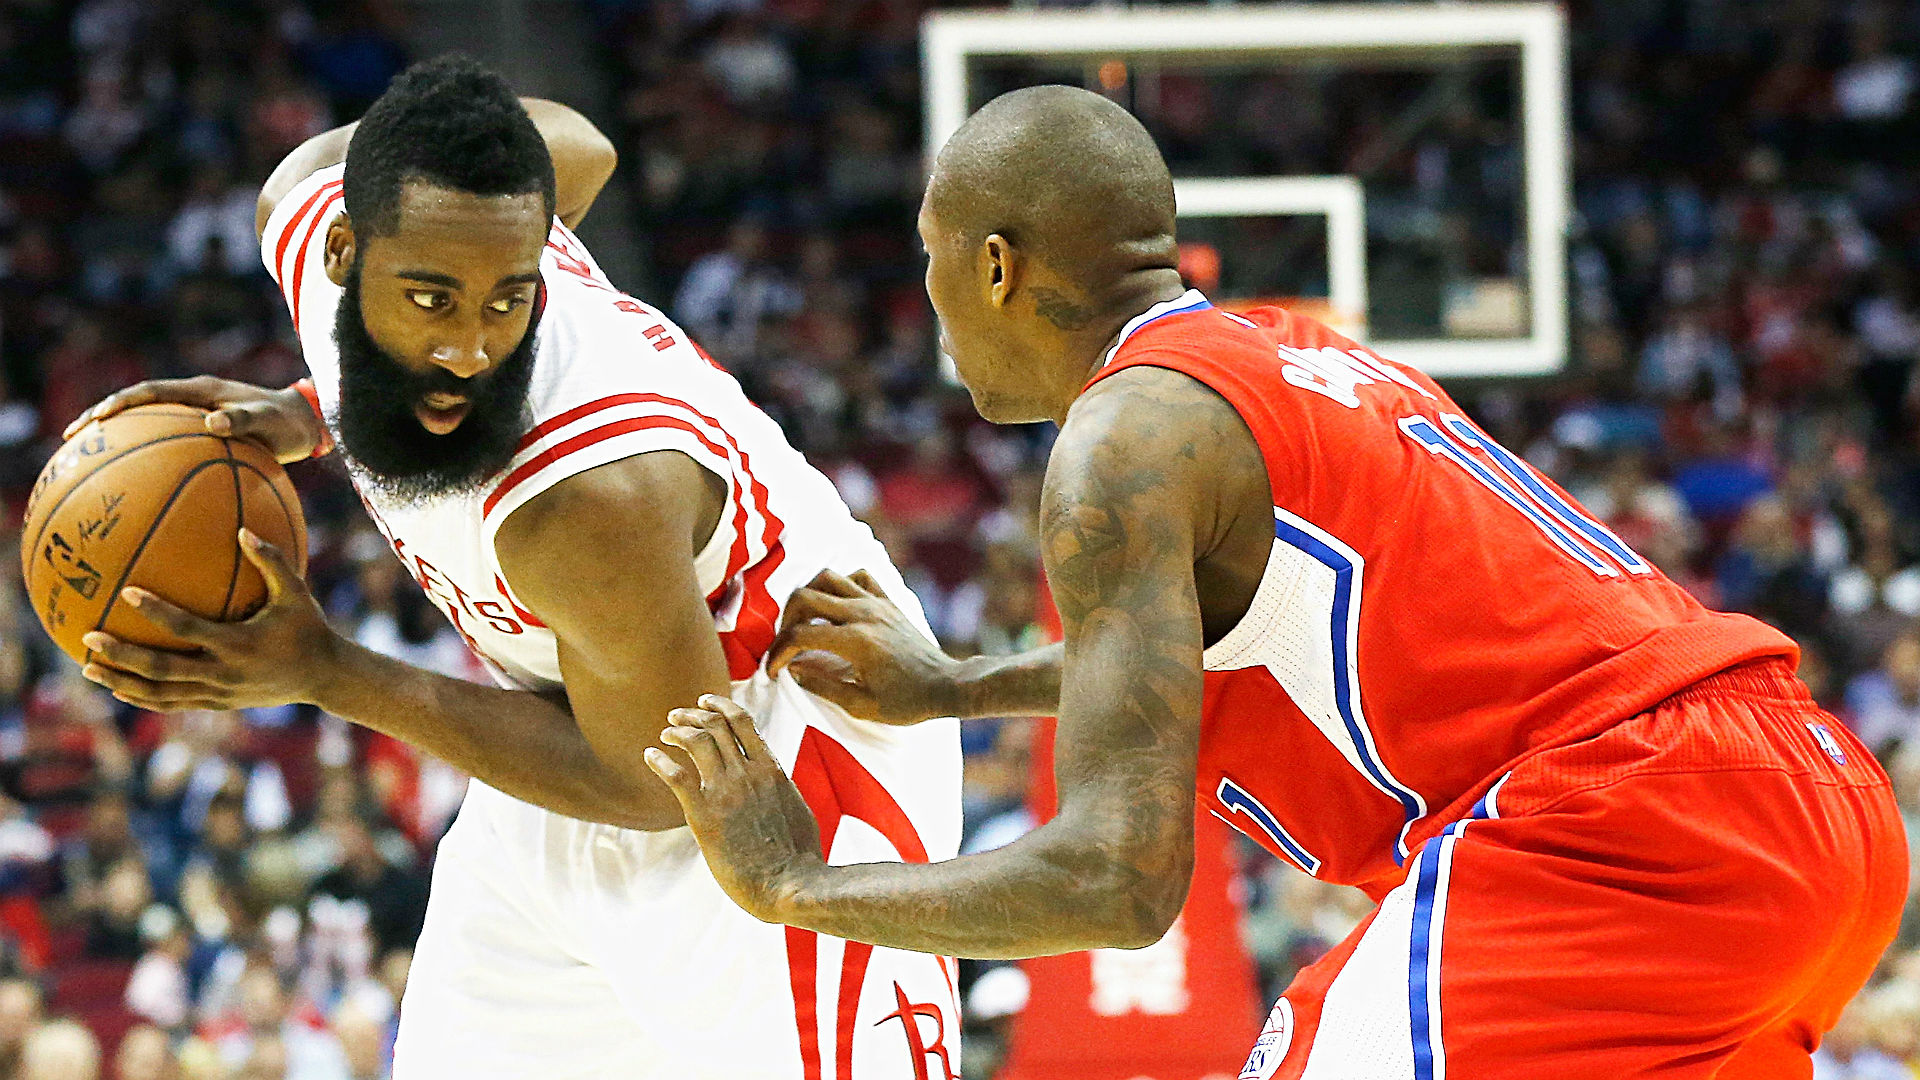 Monday's NBA Playoffs lines and picks - Short-handed Cavs host Bulls, weary Clippers visit Rockets